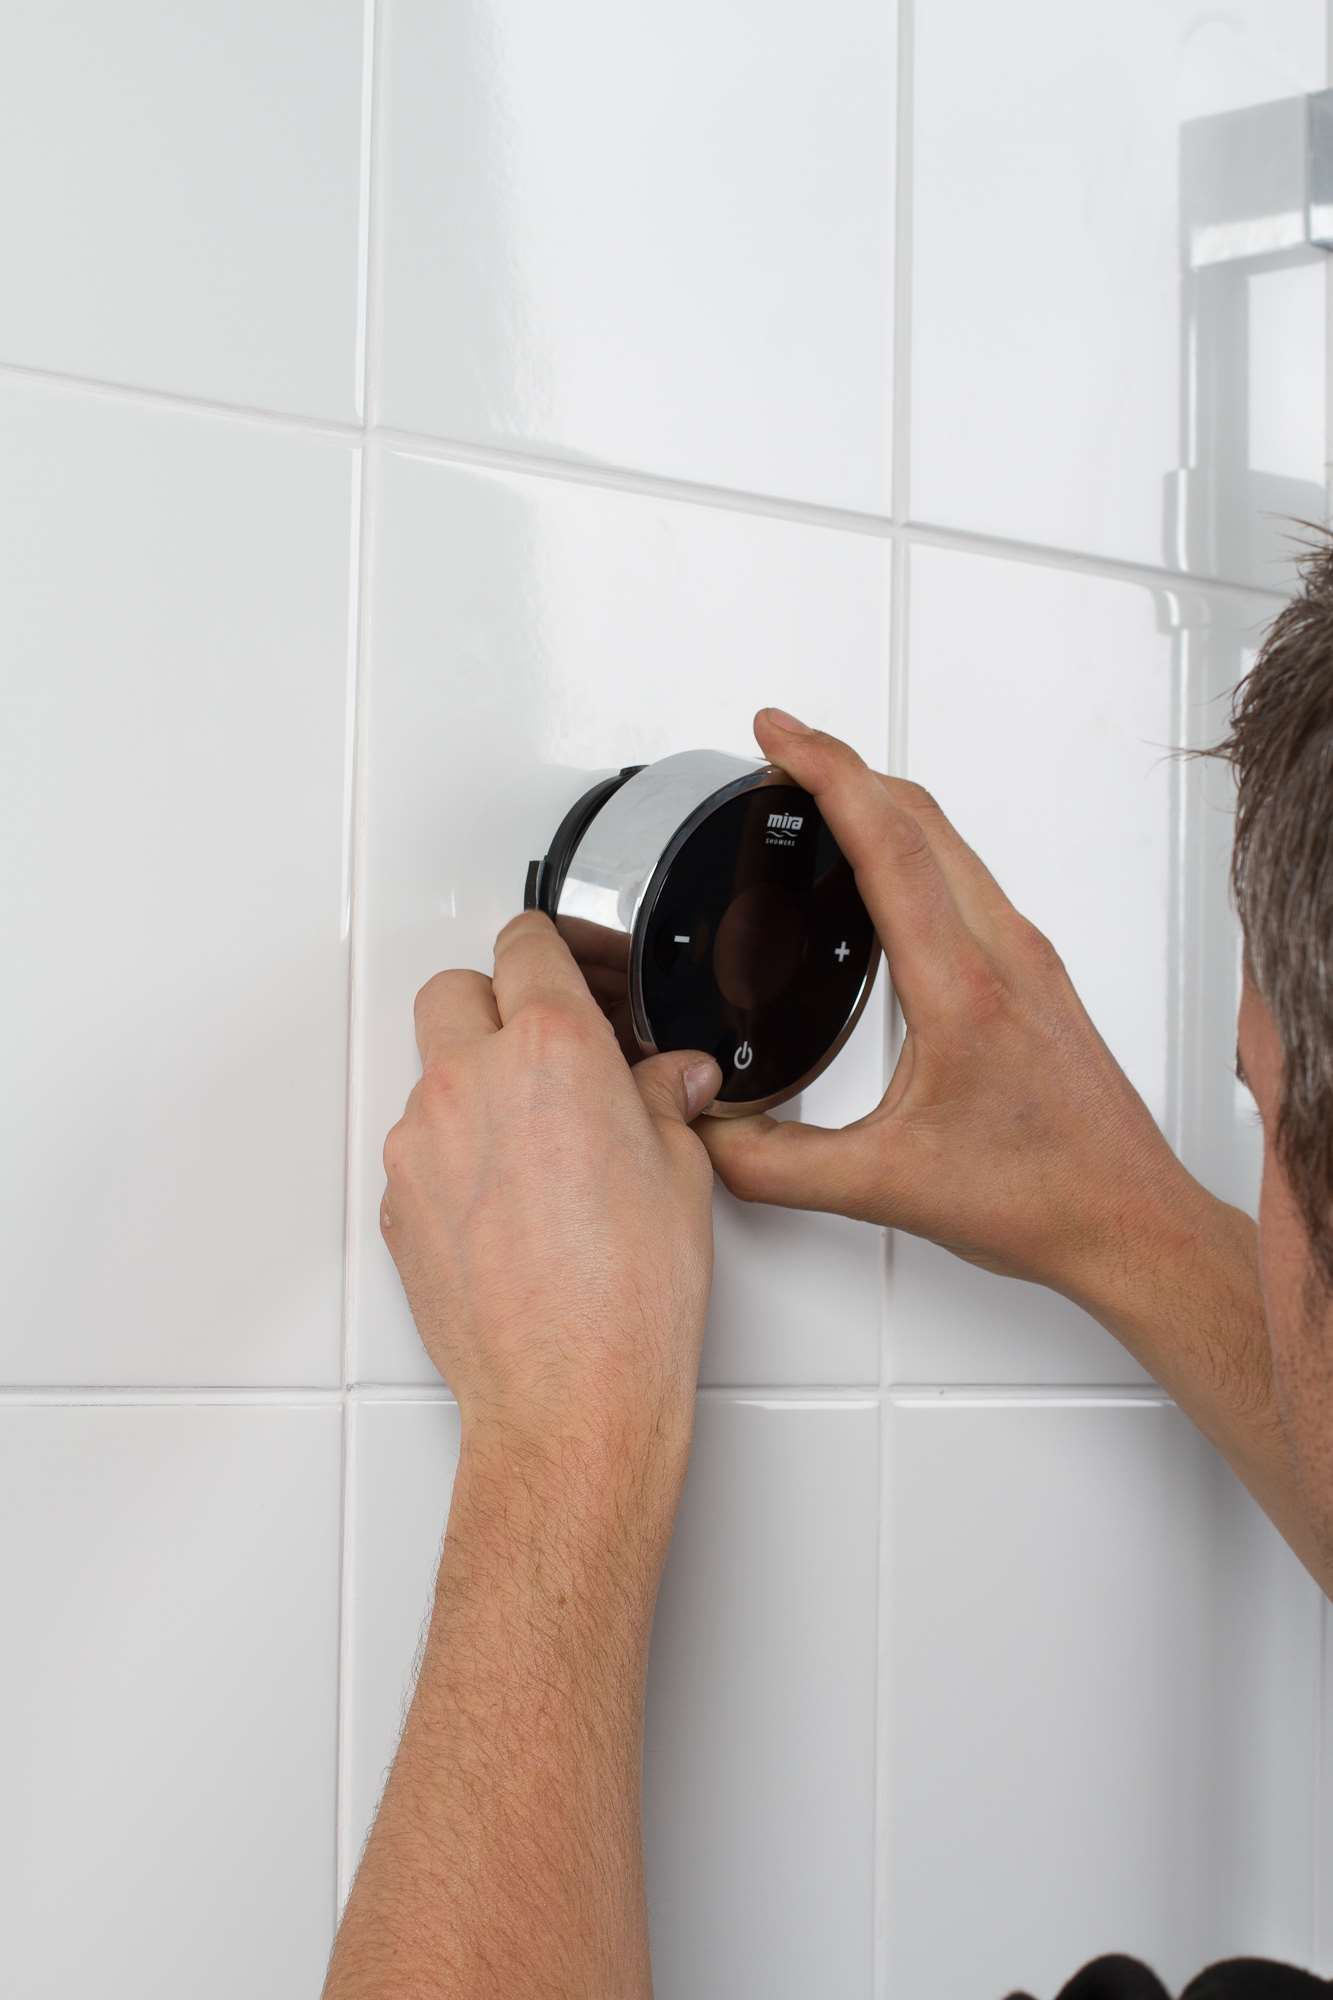 We Know That When It Comes To Installing A Digital Shower, Even The Most  Experienced Of Installers Can Have Questions About A Product Or  Installation.